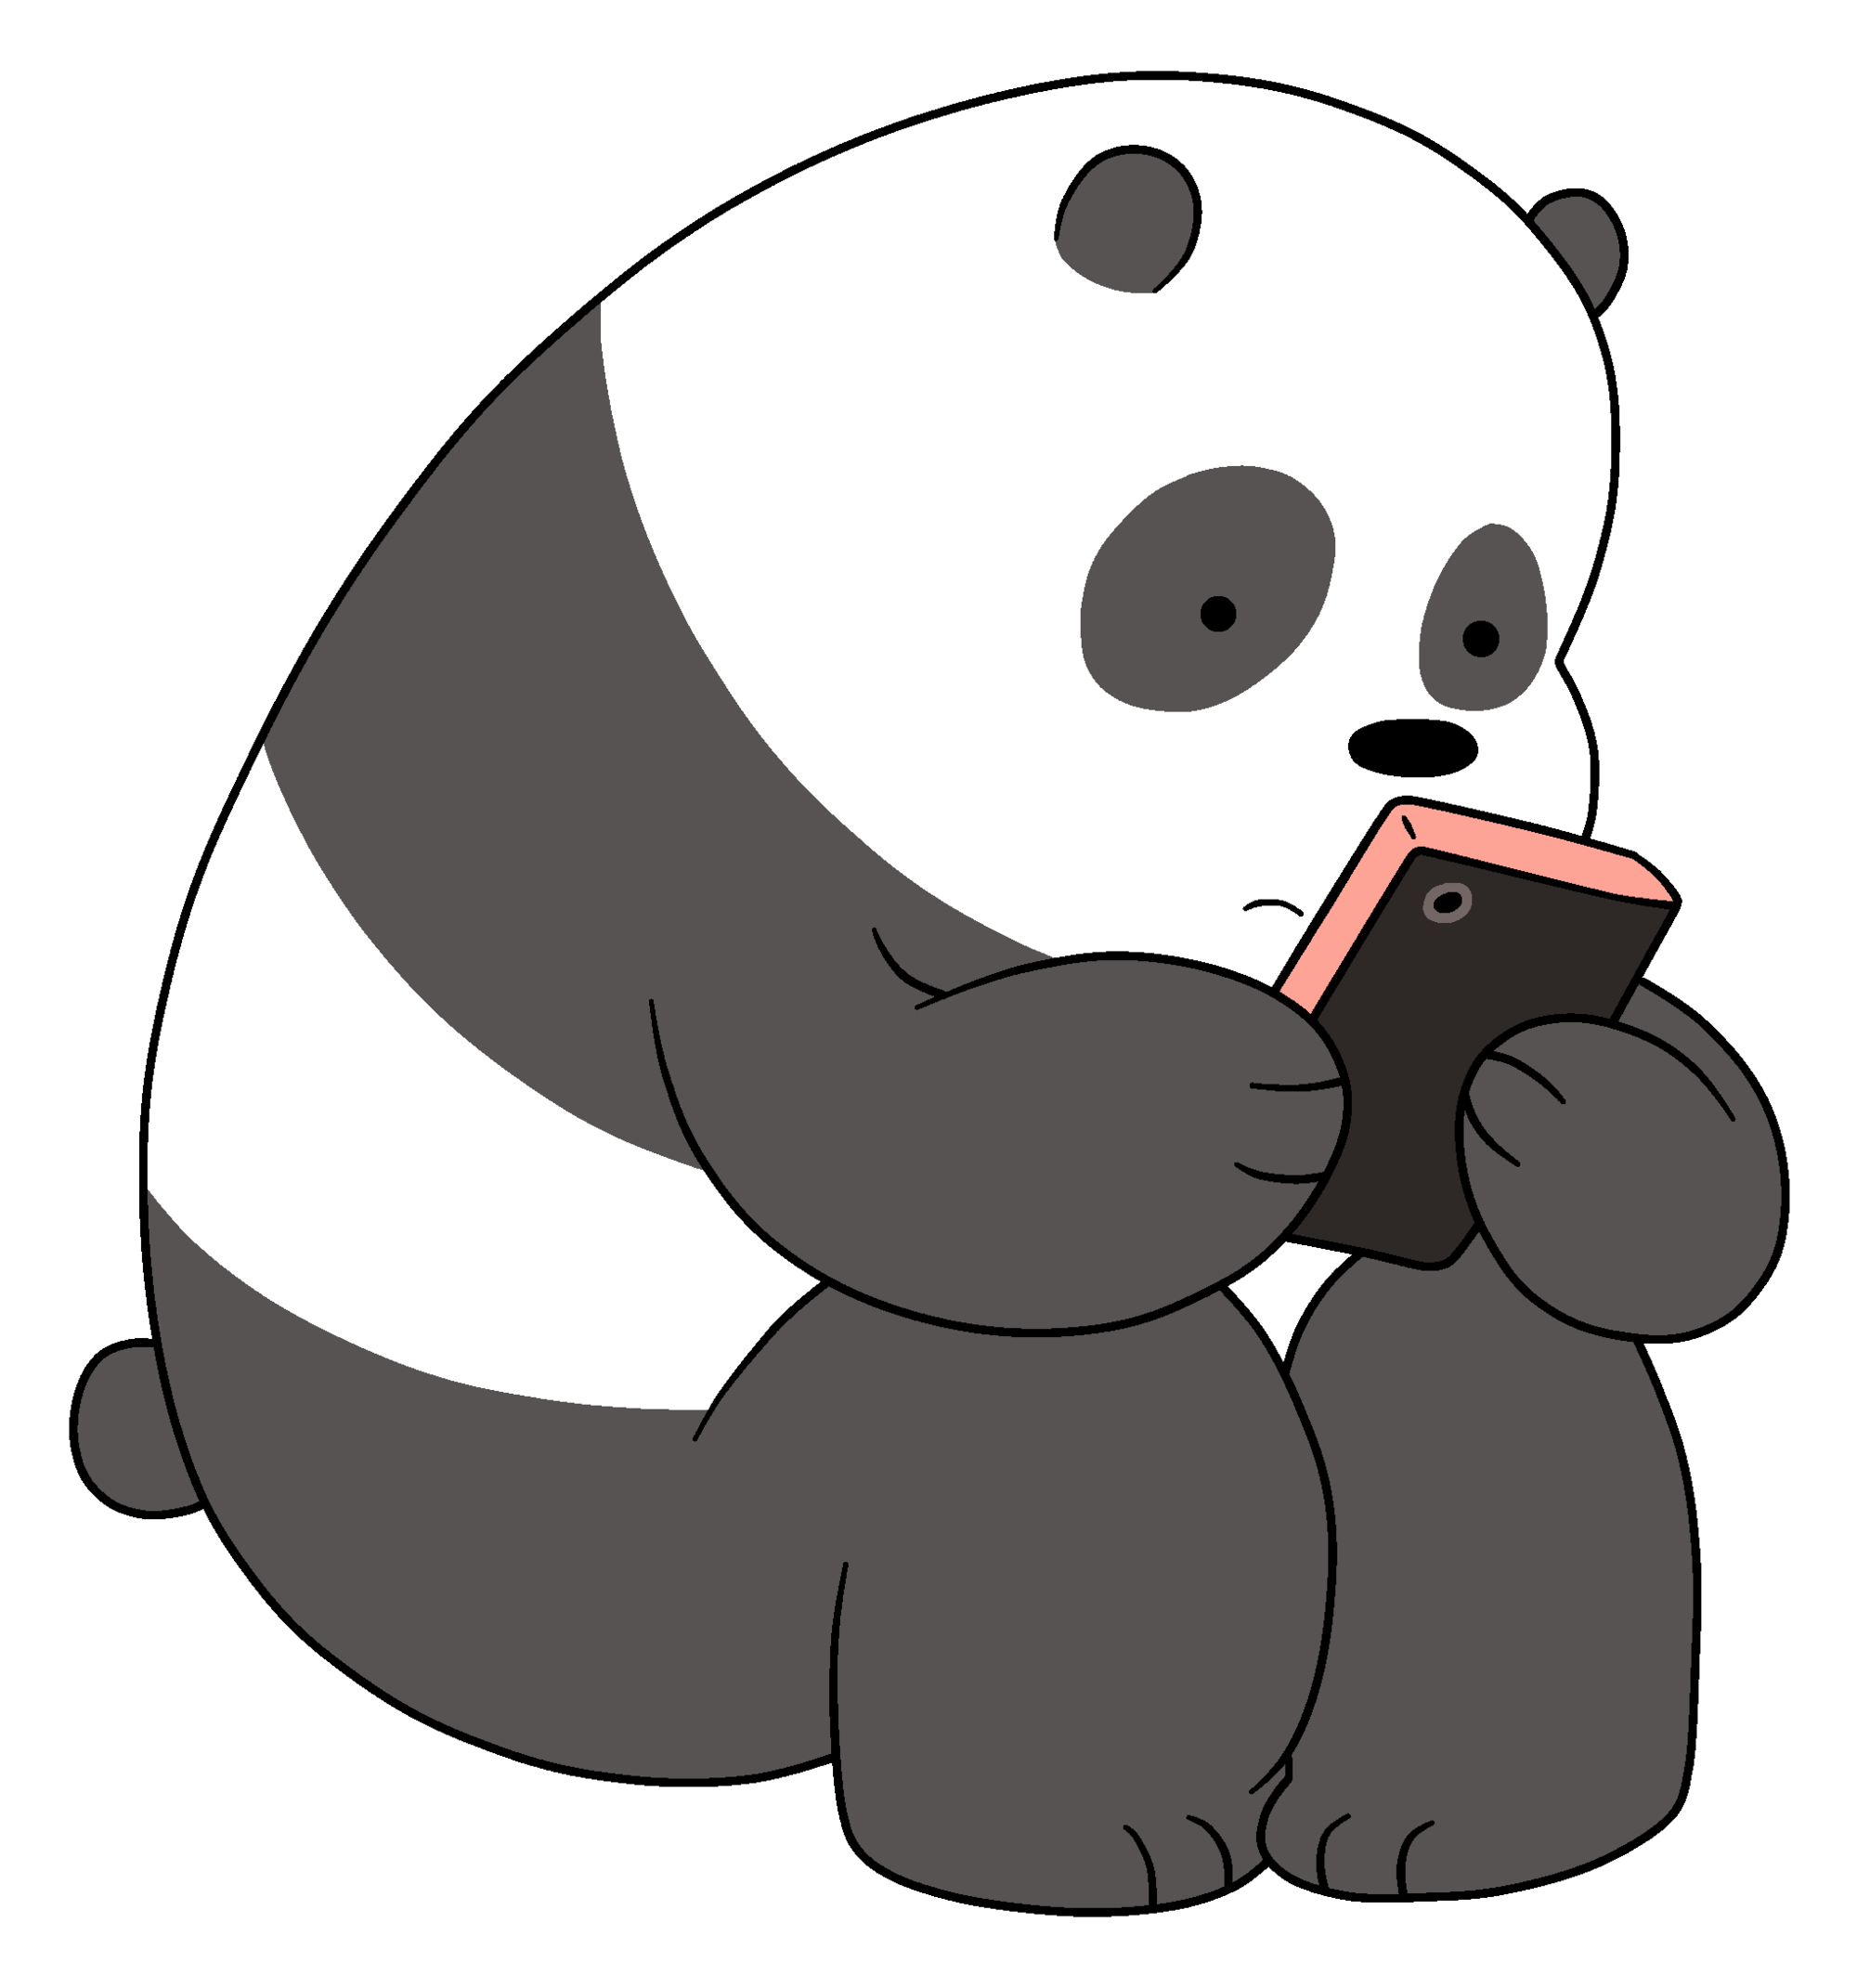 Grizzly bear from we bear bears clipart black and white image freeuse stock Panda Bear | We Bare Bears Wiki | FANDOM powered by Wikia image freeuse stock